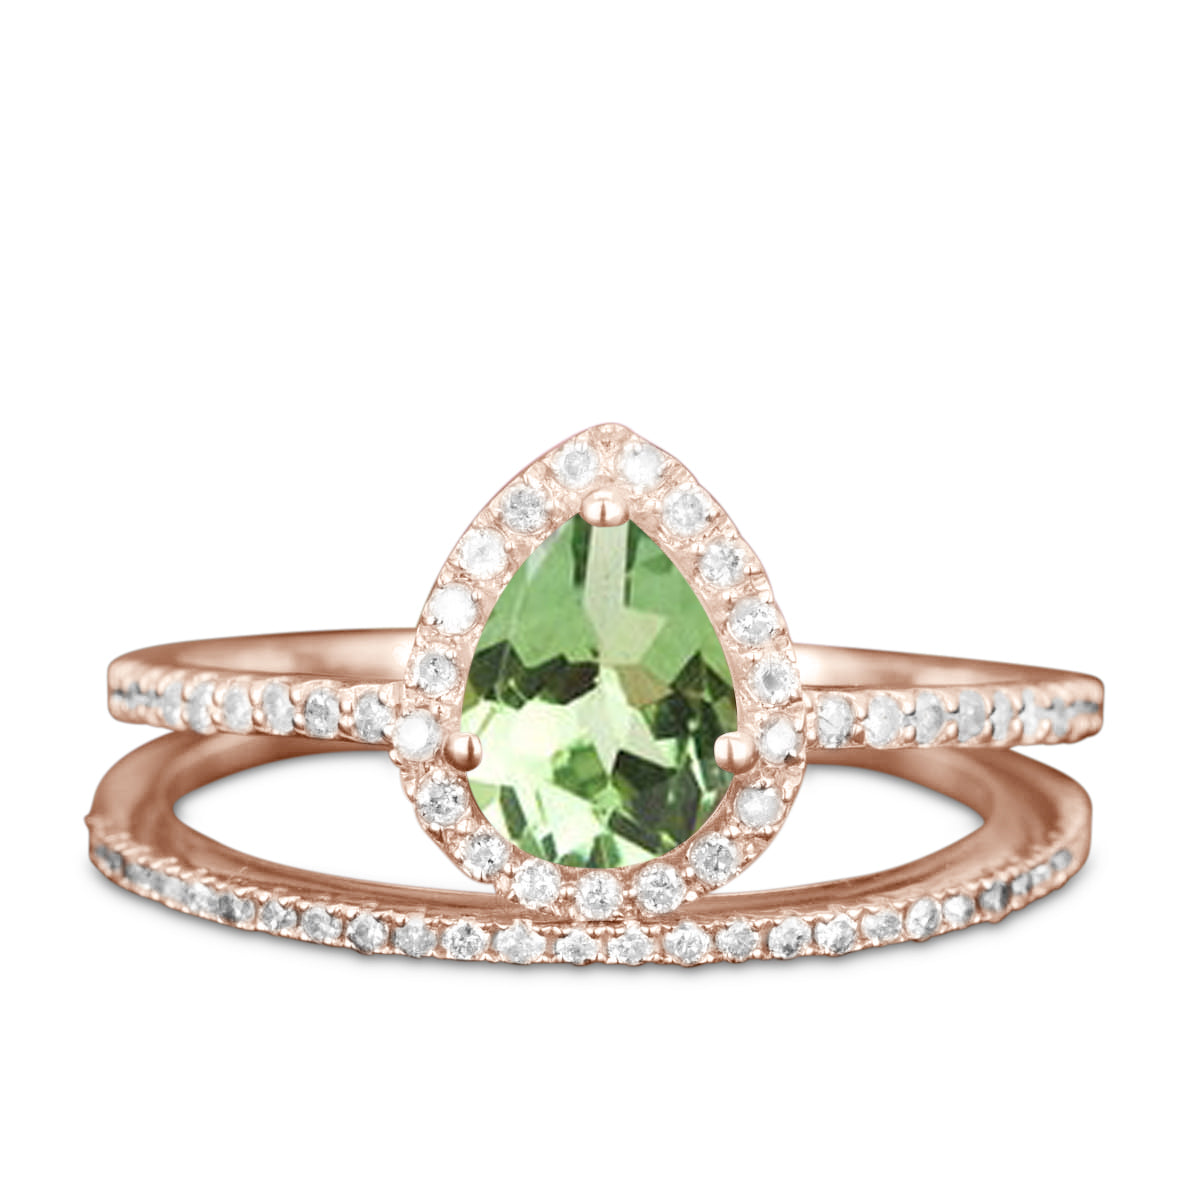 Channel Setting 2 Carat Pear Shaped Green Tourmaline Halo Diamond in Matrix Rose Engagement Ring Sets